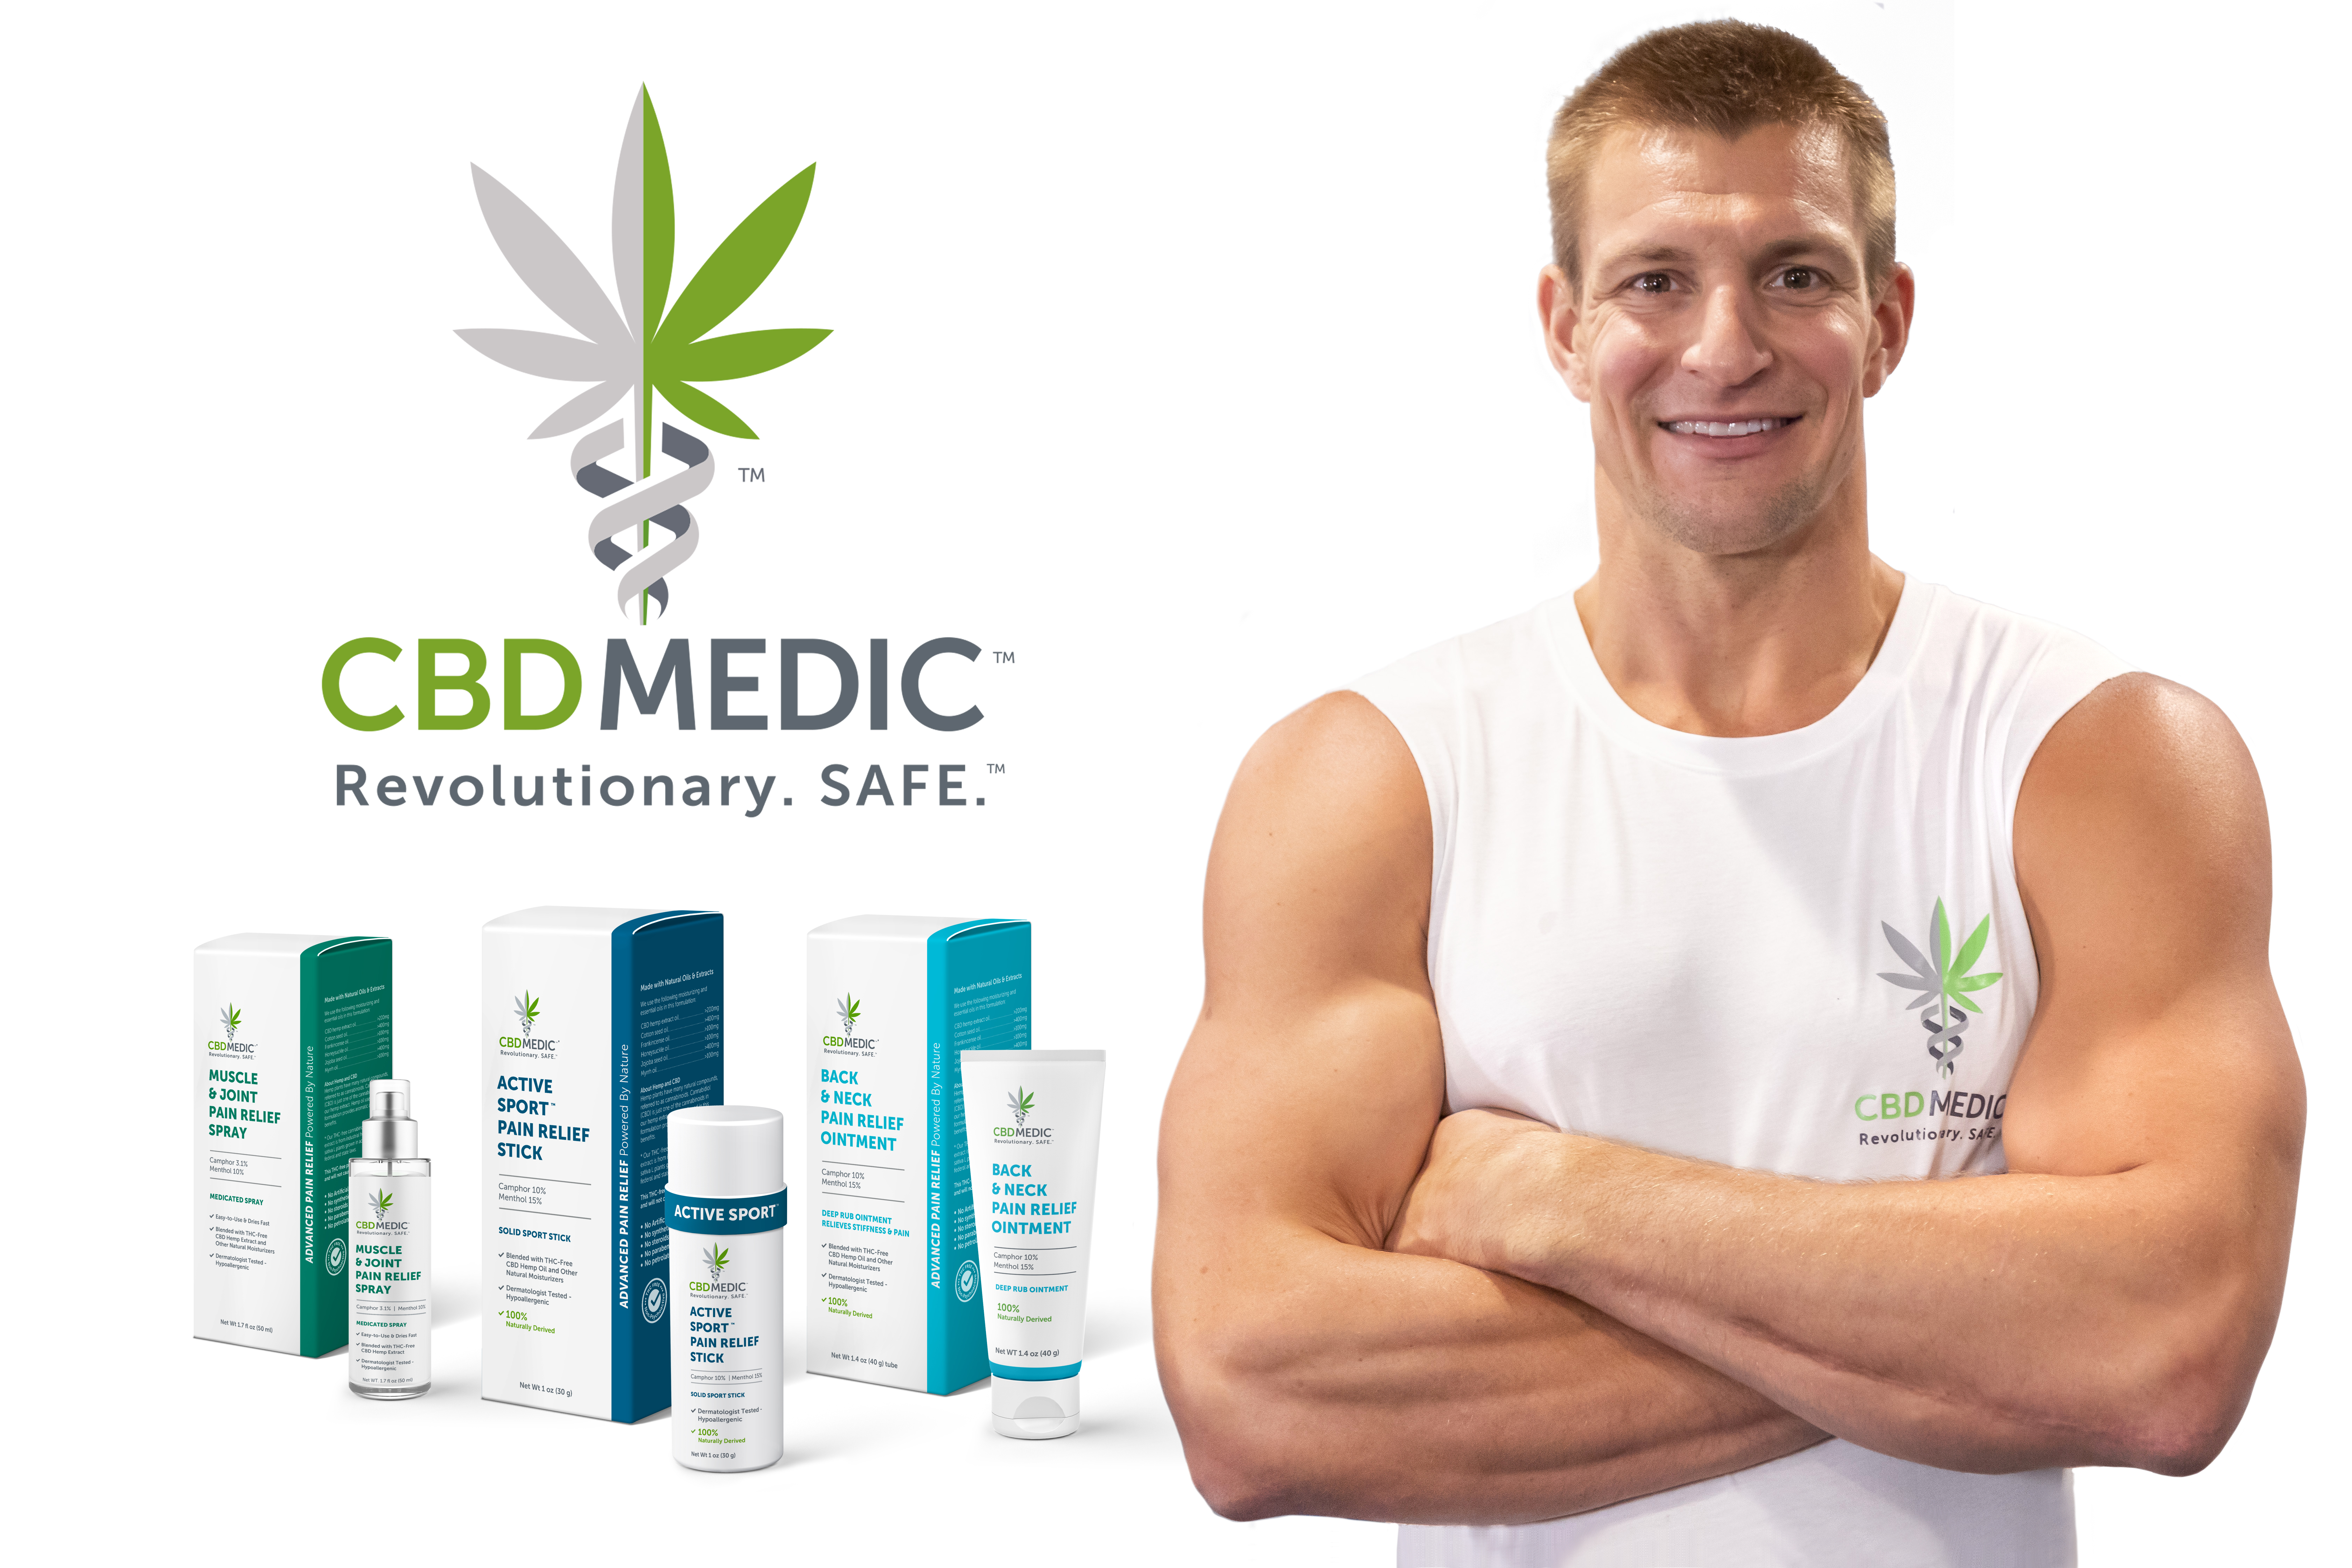 Rob Gronkowski (Gronk) Becomes an Advocate for CBD and